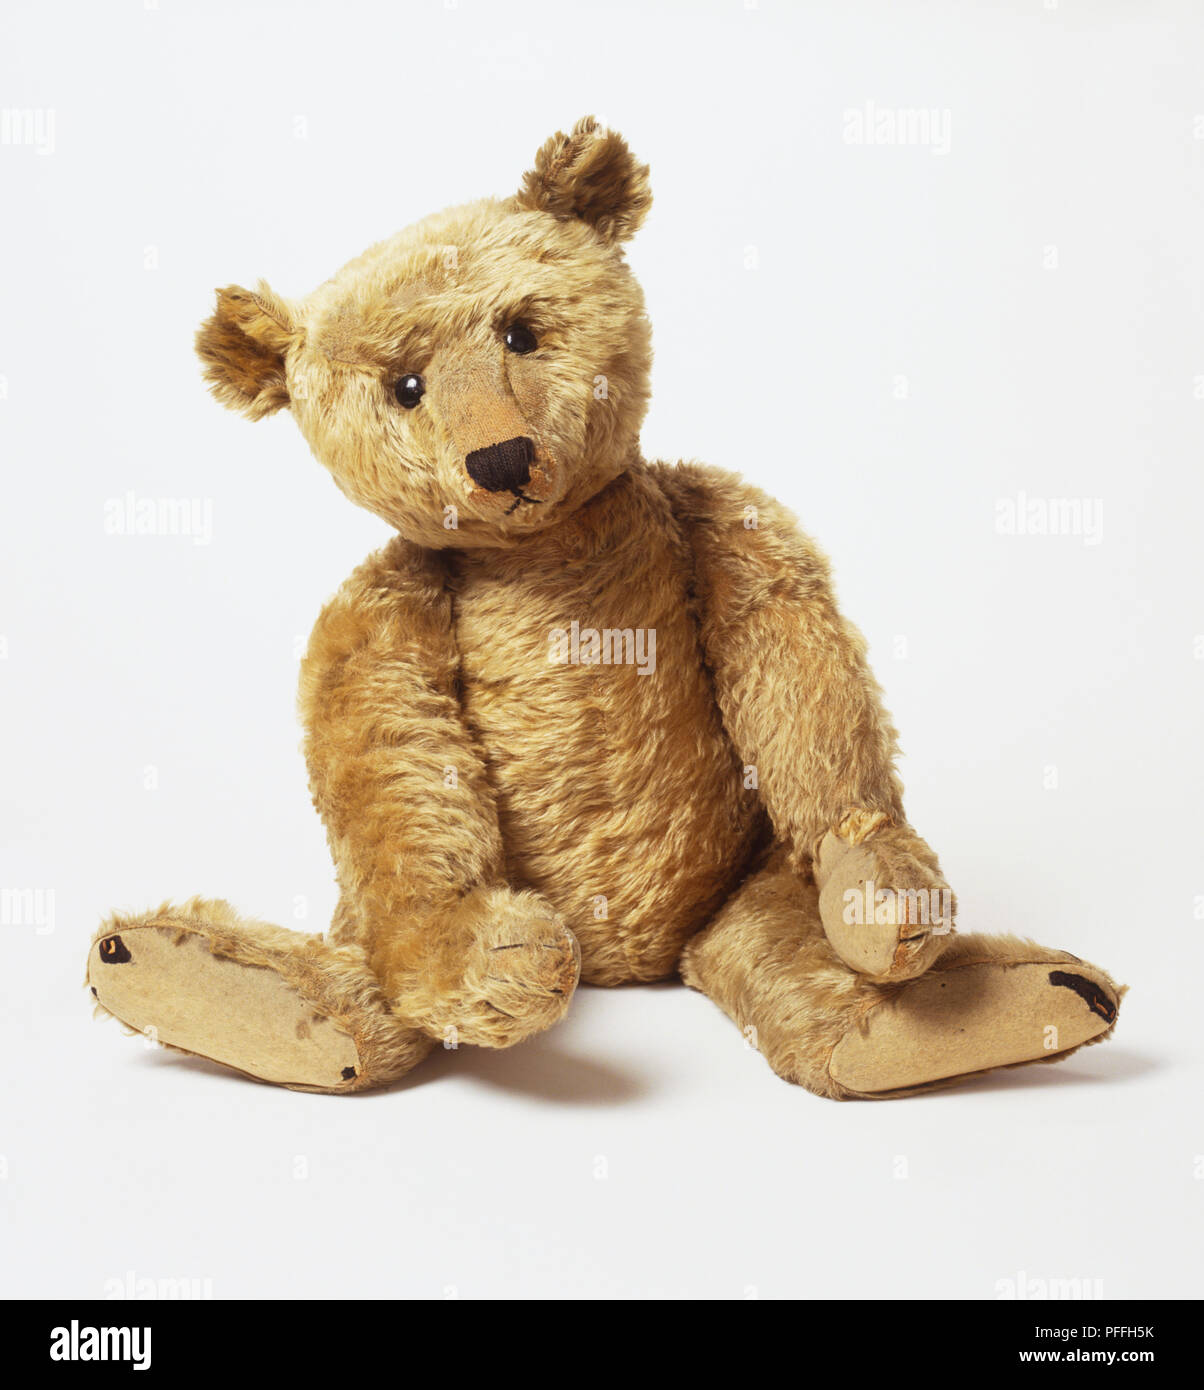 c9886e48a21 Pre-1914 Steiff: Sitting yellow teddy bear, front view - Stock Image